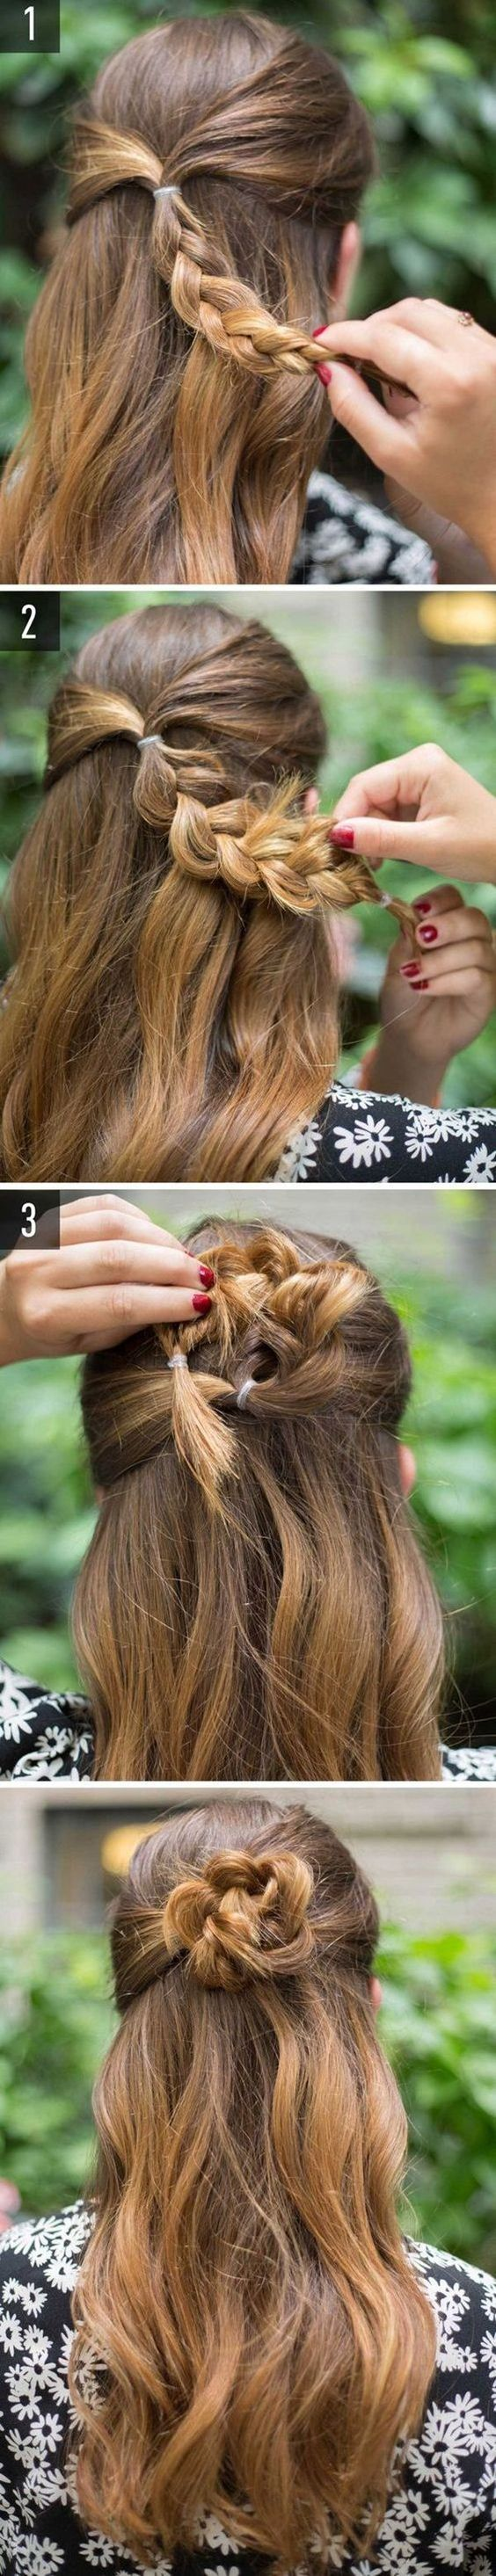 40 Easy Hairstyles for Schools to Try in 2017. Quick, Easy, Cute and Simple Step By Step Girls and Teens Hairstyles for Back to School. Great For Medium Hair, Short, Curly, Messy or Formal Looks. G(Hair Tutorial For School)